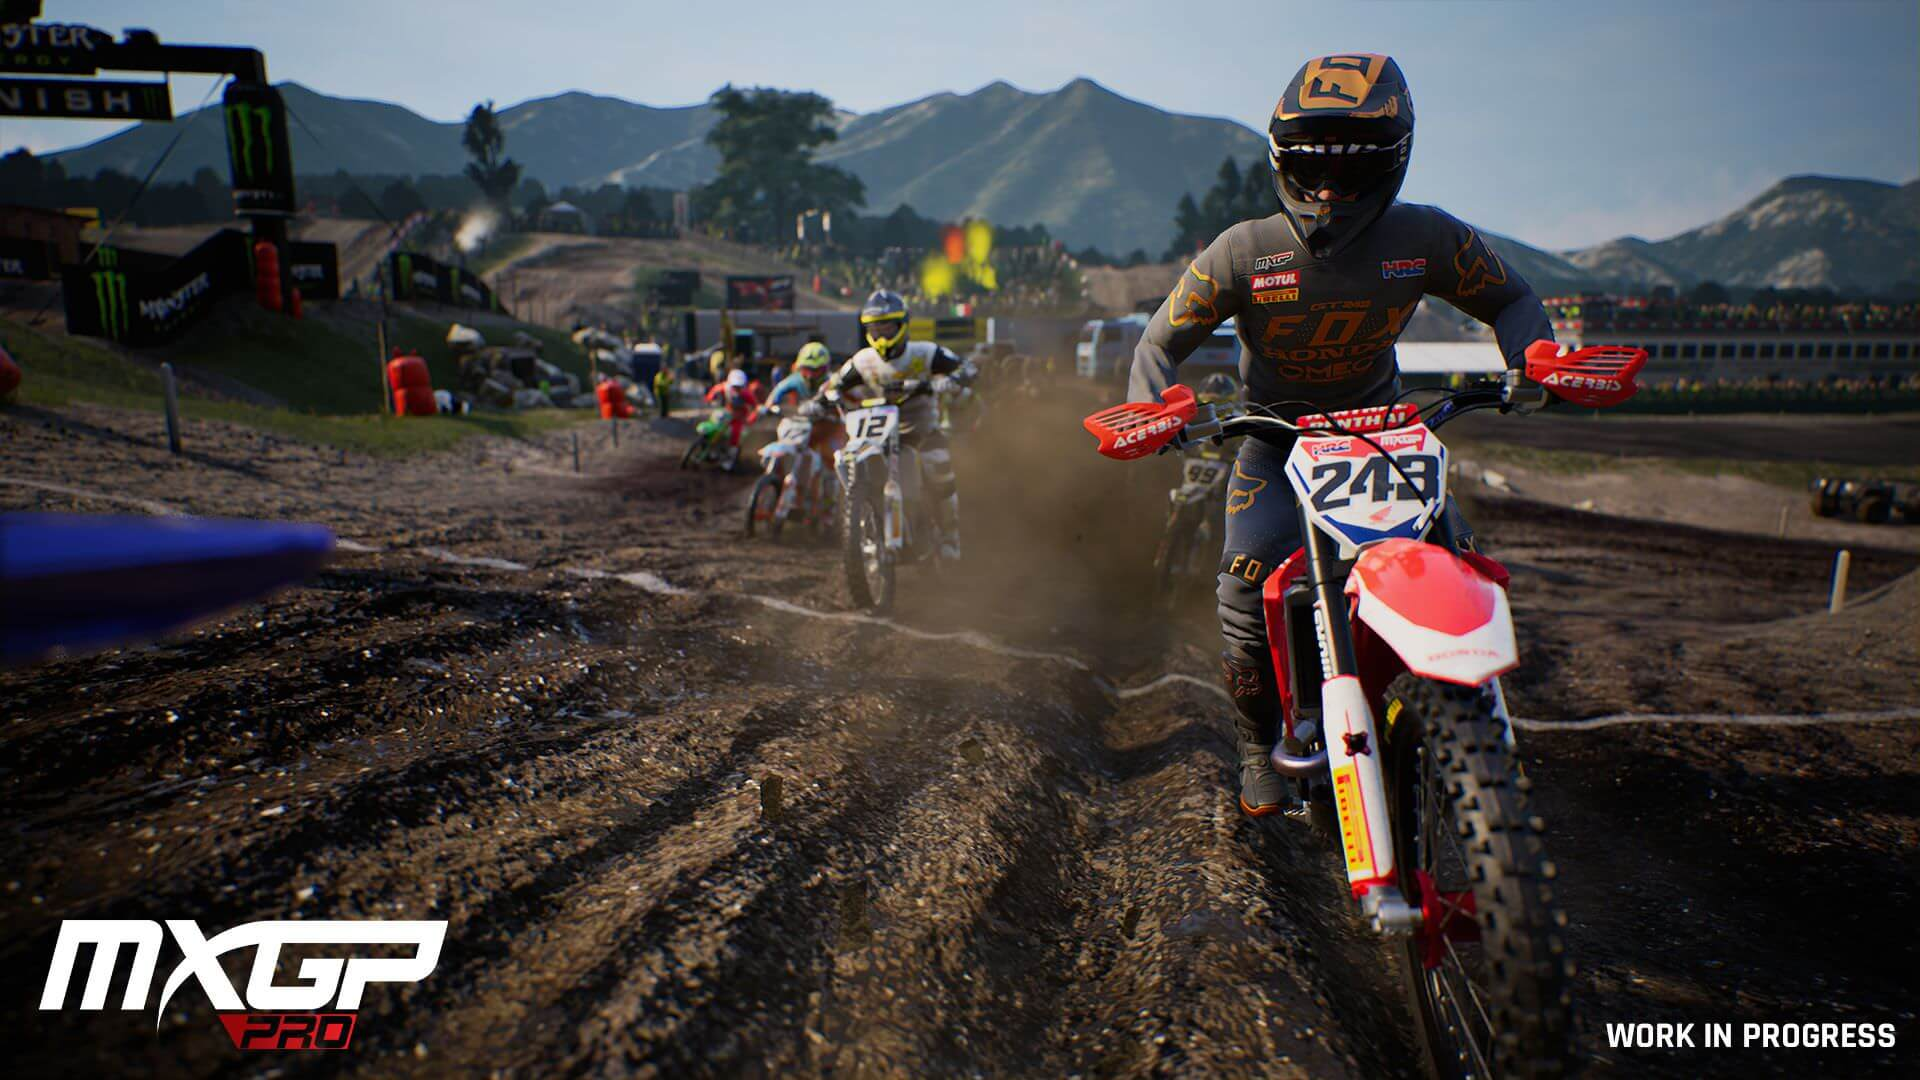 MxGP PRO Cross Motorcycle Simulator - LeanGP